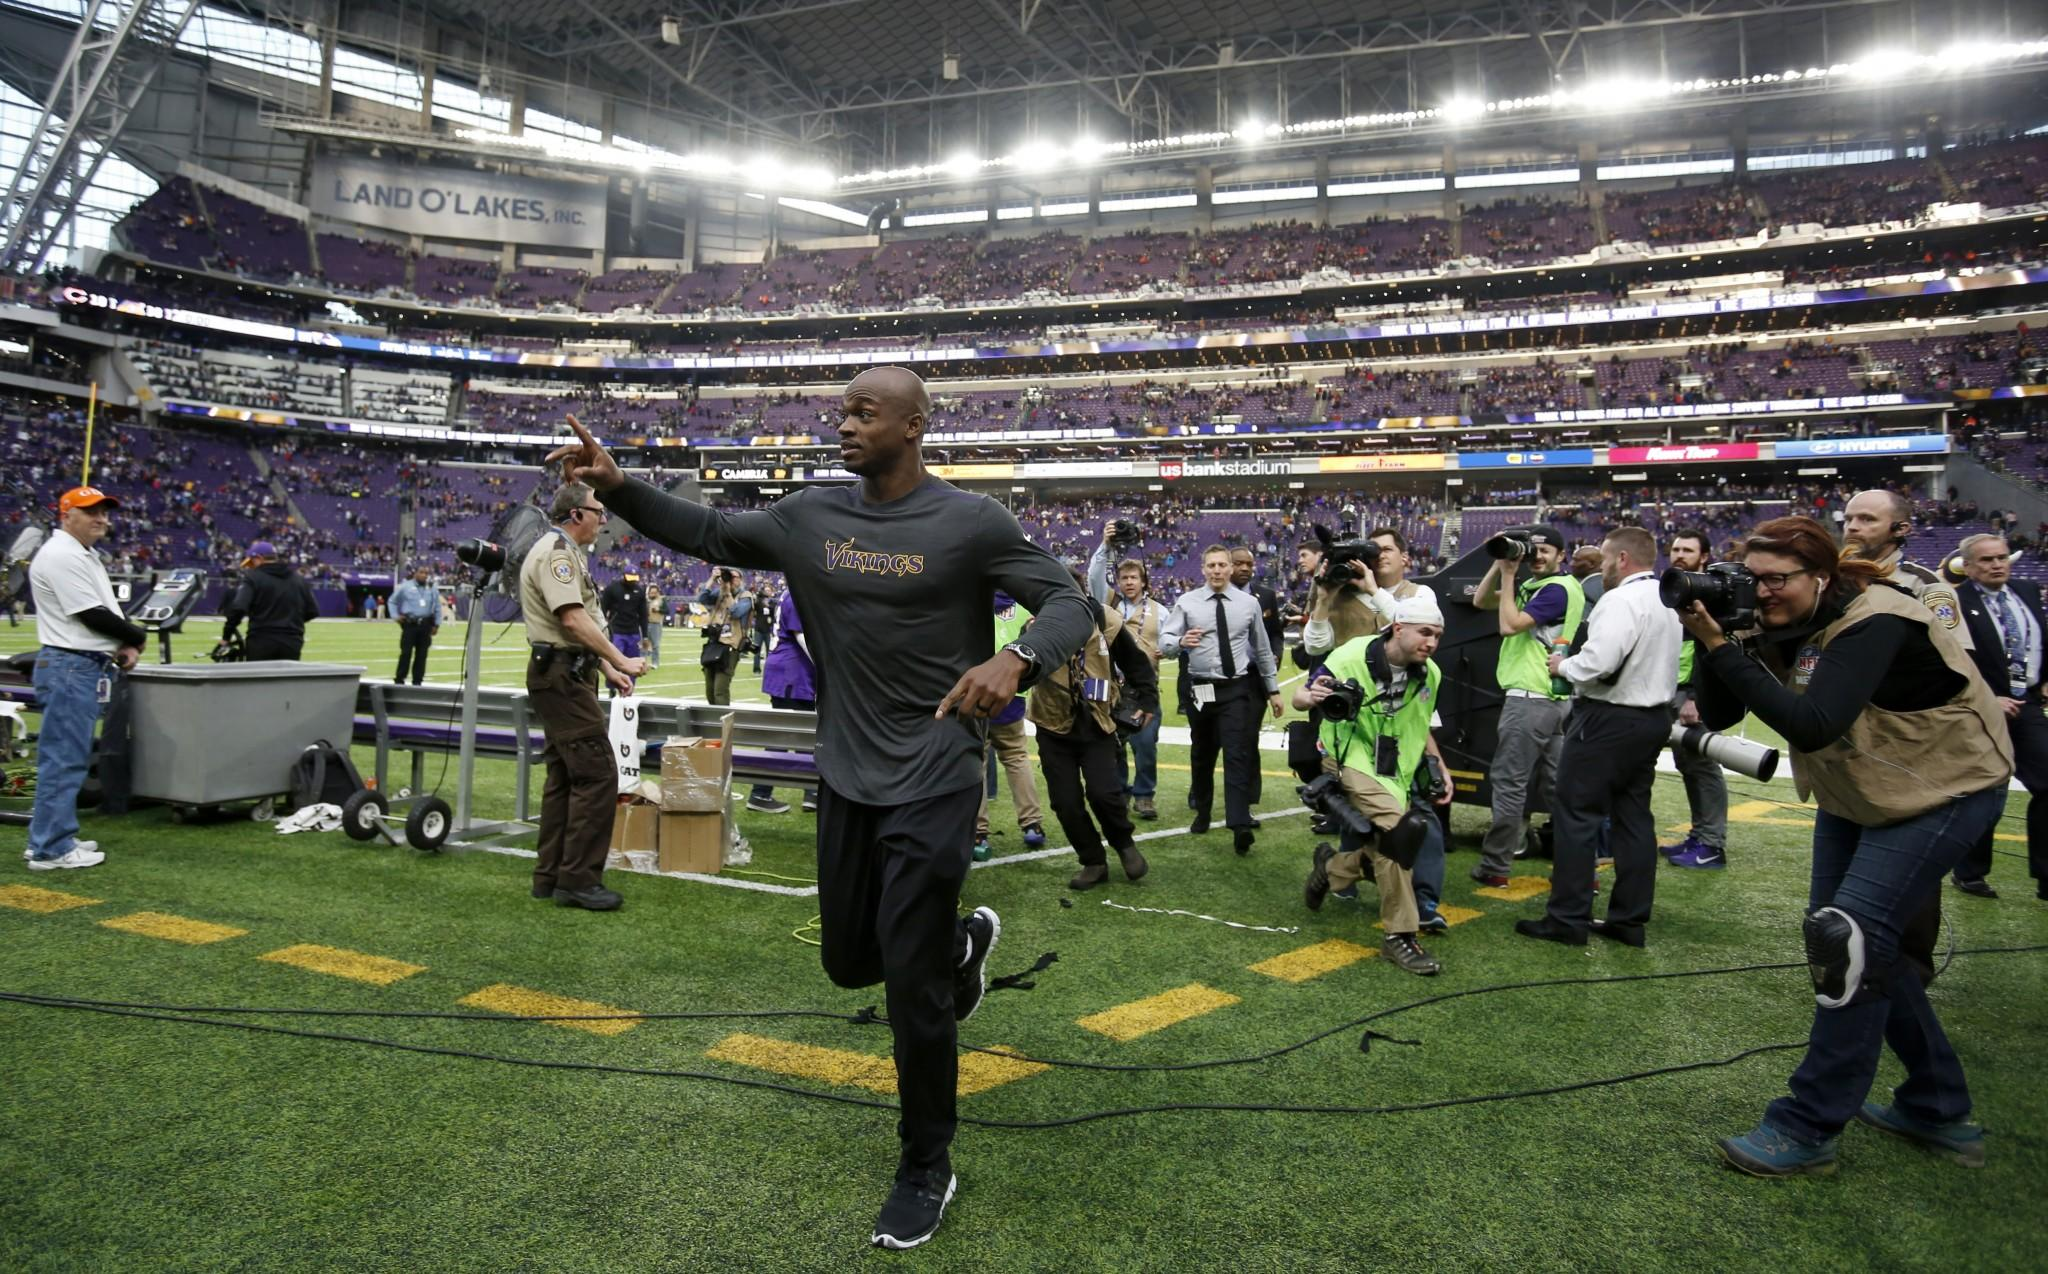 Adrian Peterson wants to remain with Vikings but also eyeing Giants, Bucs, Texans